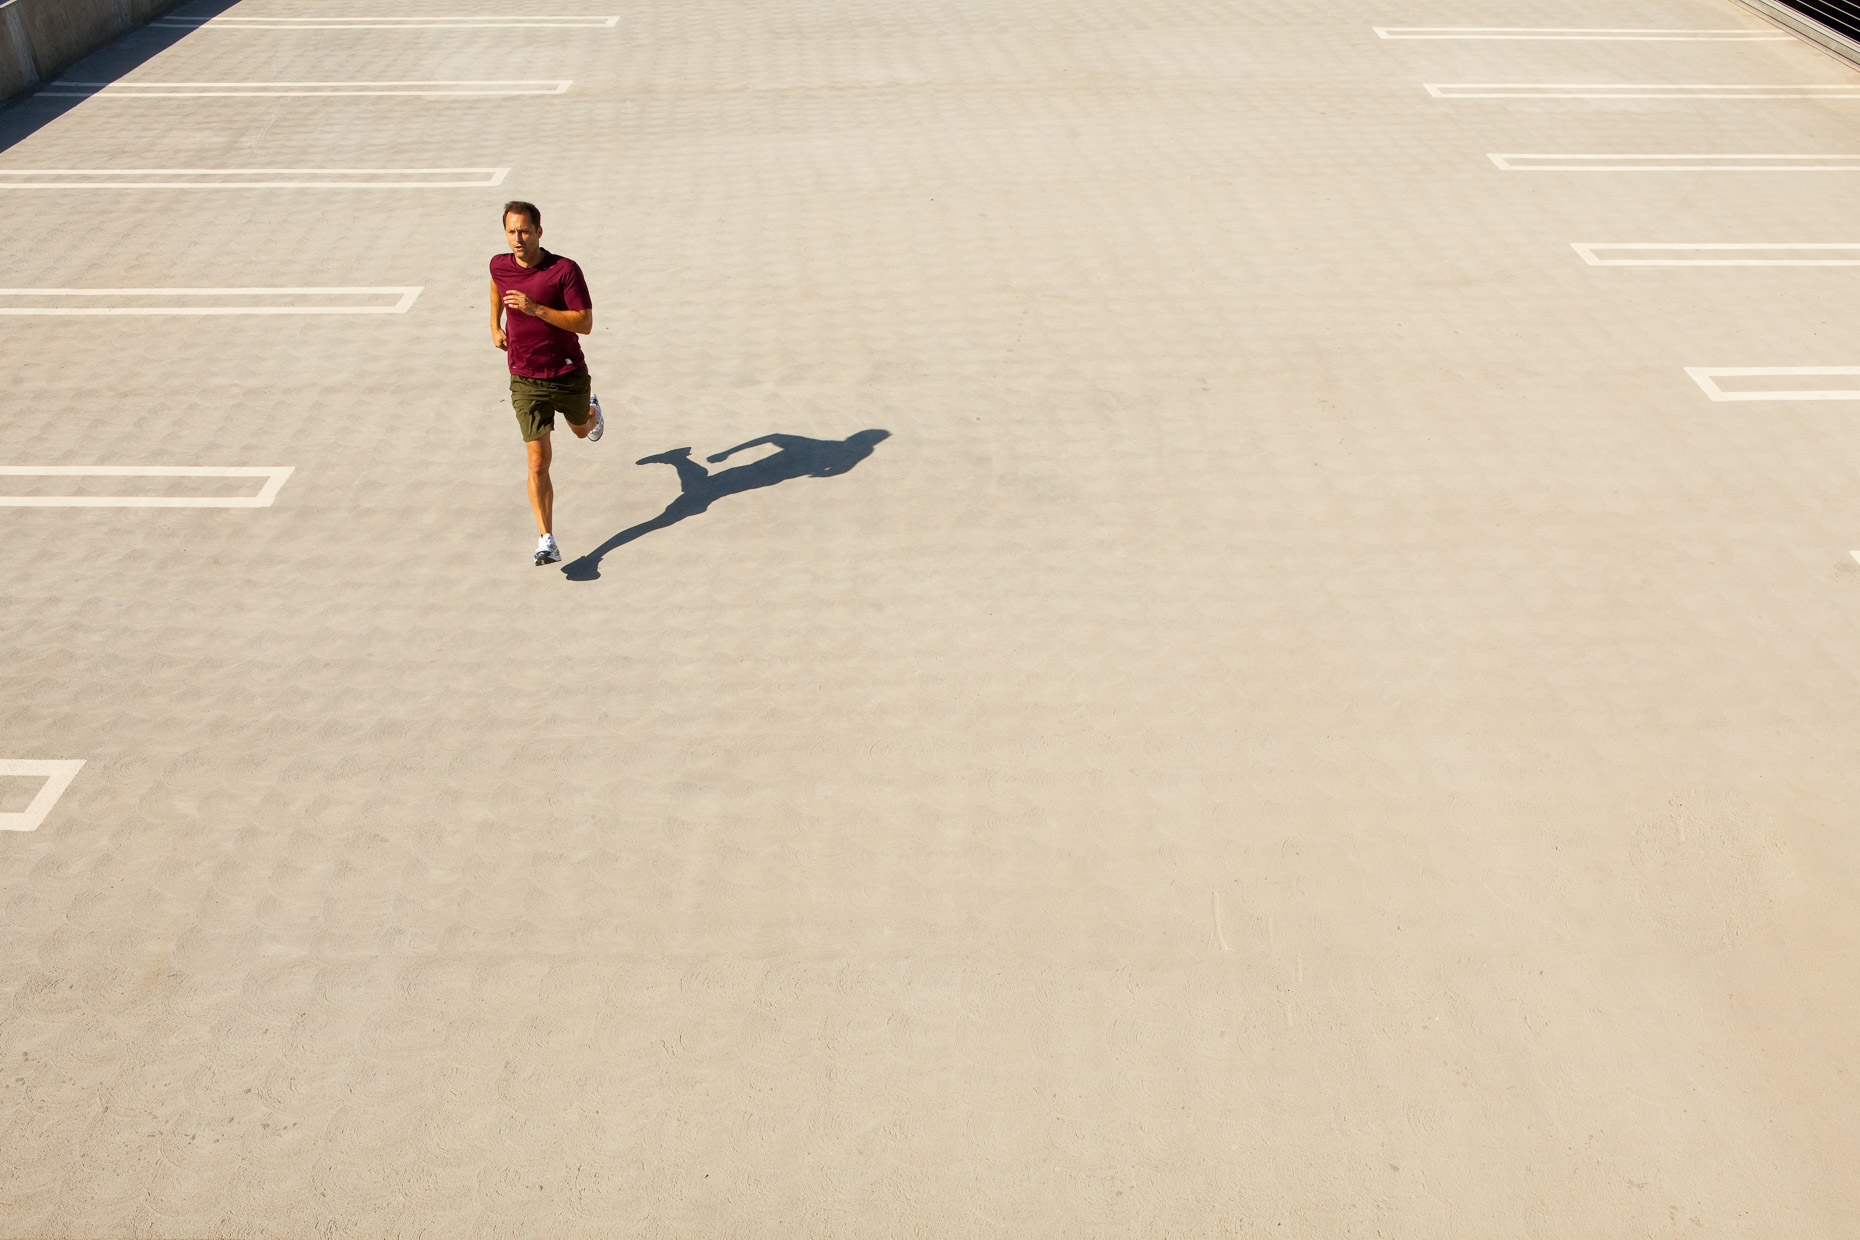 Man running on concrete paved parking lot, aerial by David Zaitz Photography.